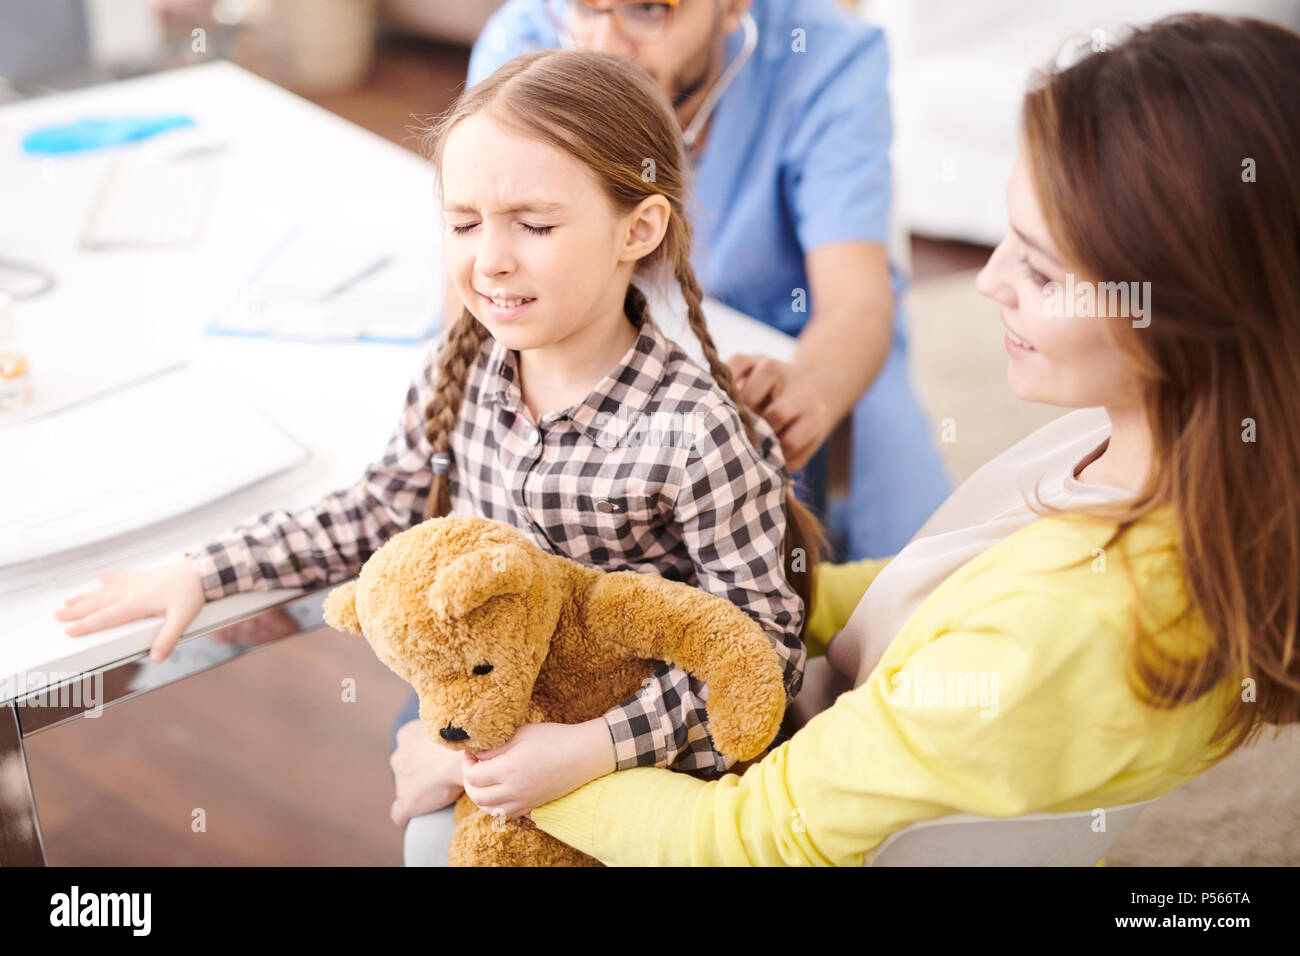 Scared Little Girl in Health Check up - Stock Image